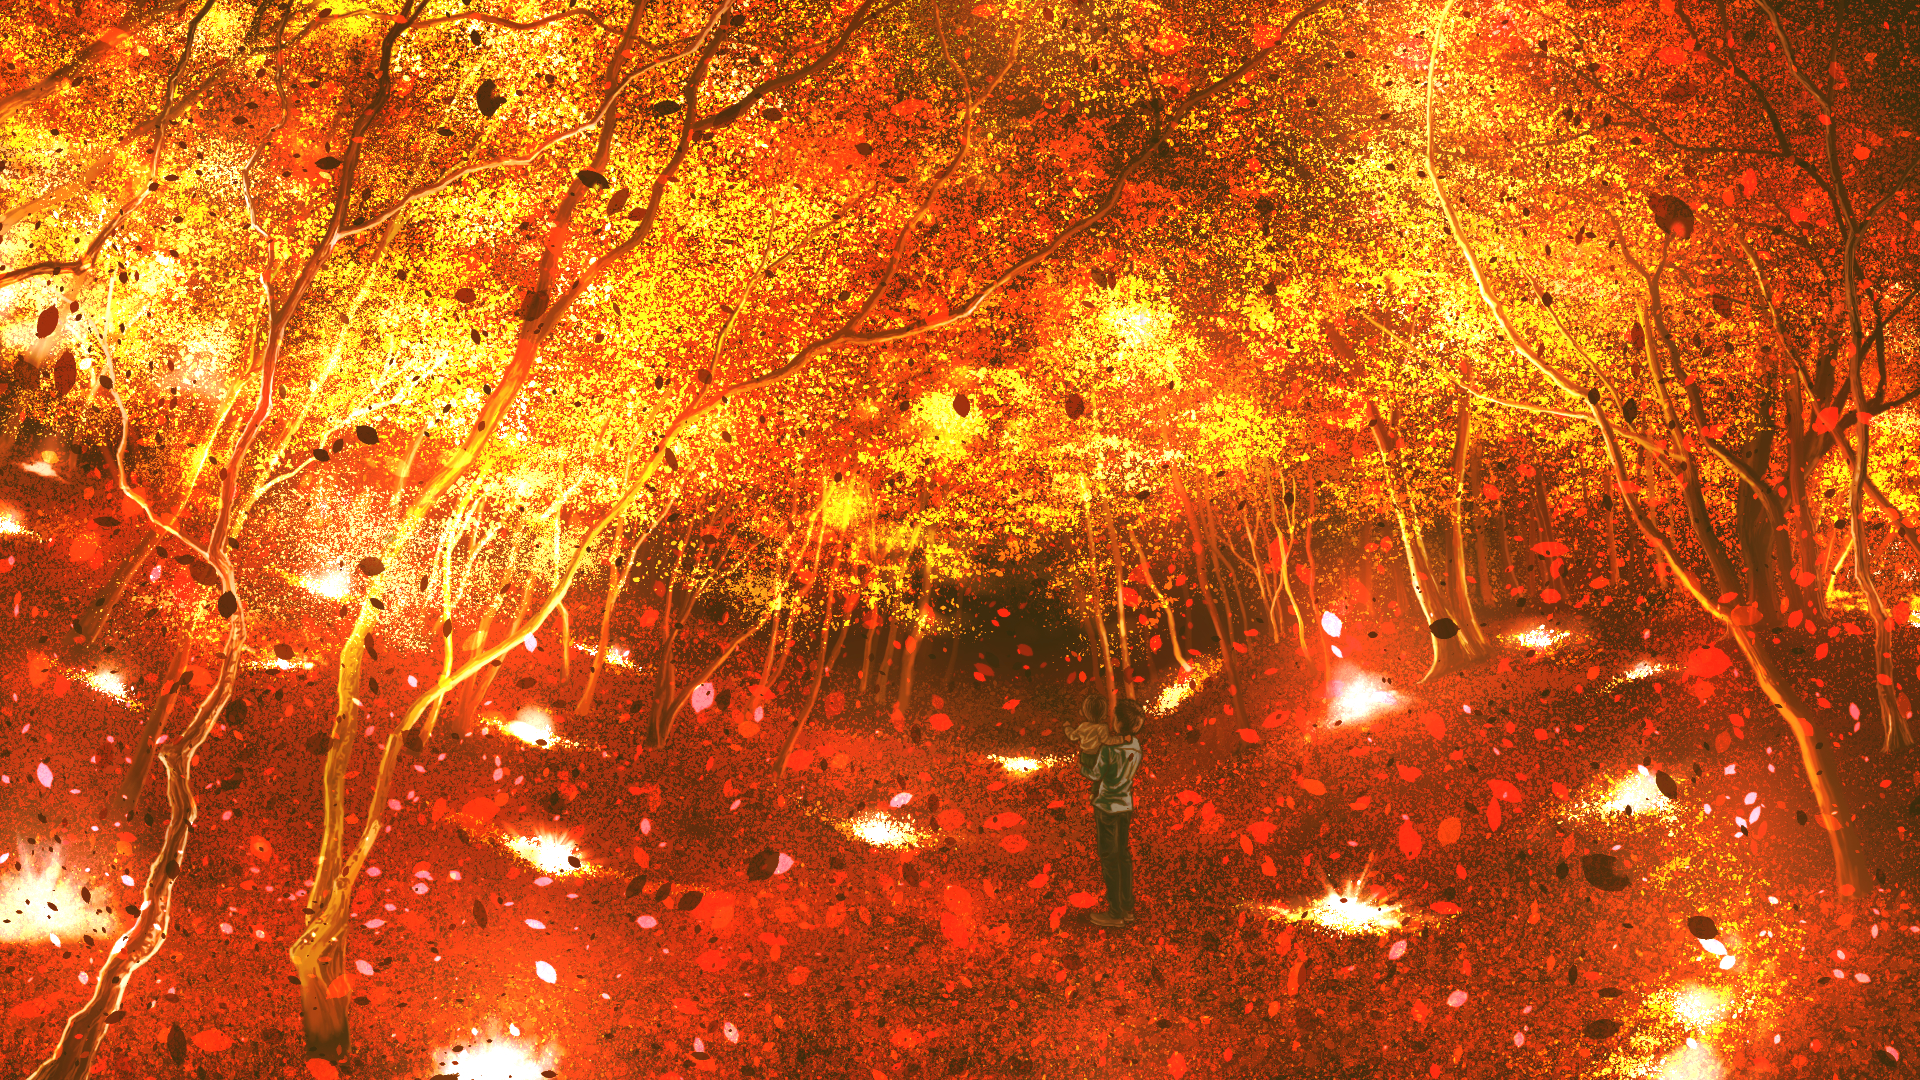 Fall Themed Iphone Wallpapers Original Hd Wallpaper Background Image 1920x1080 Id